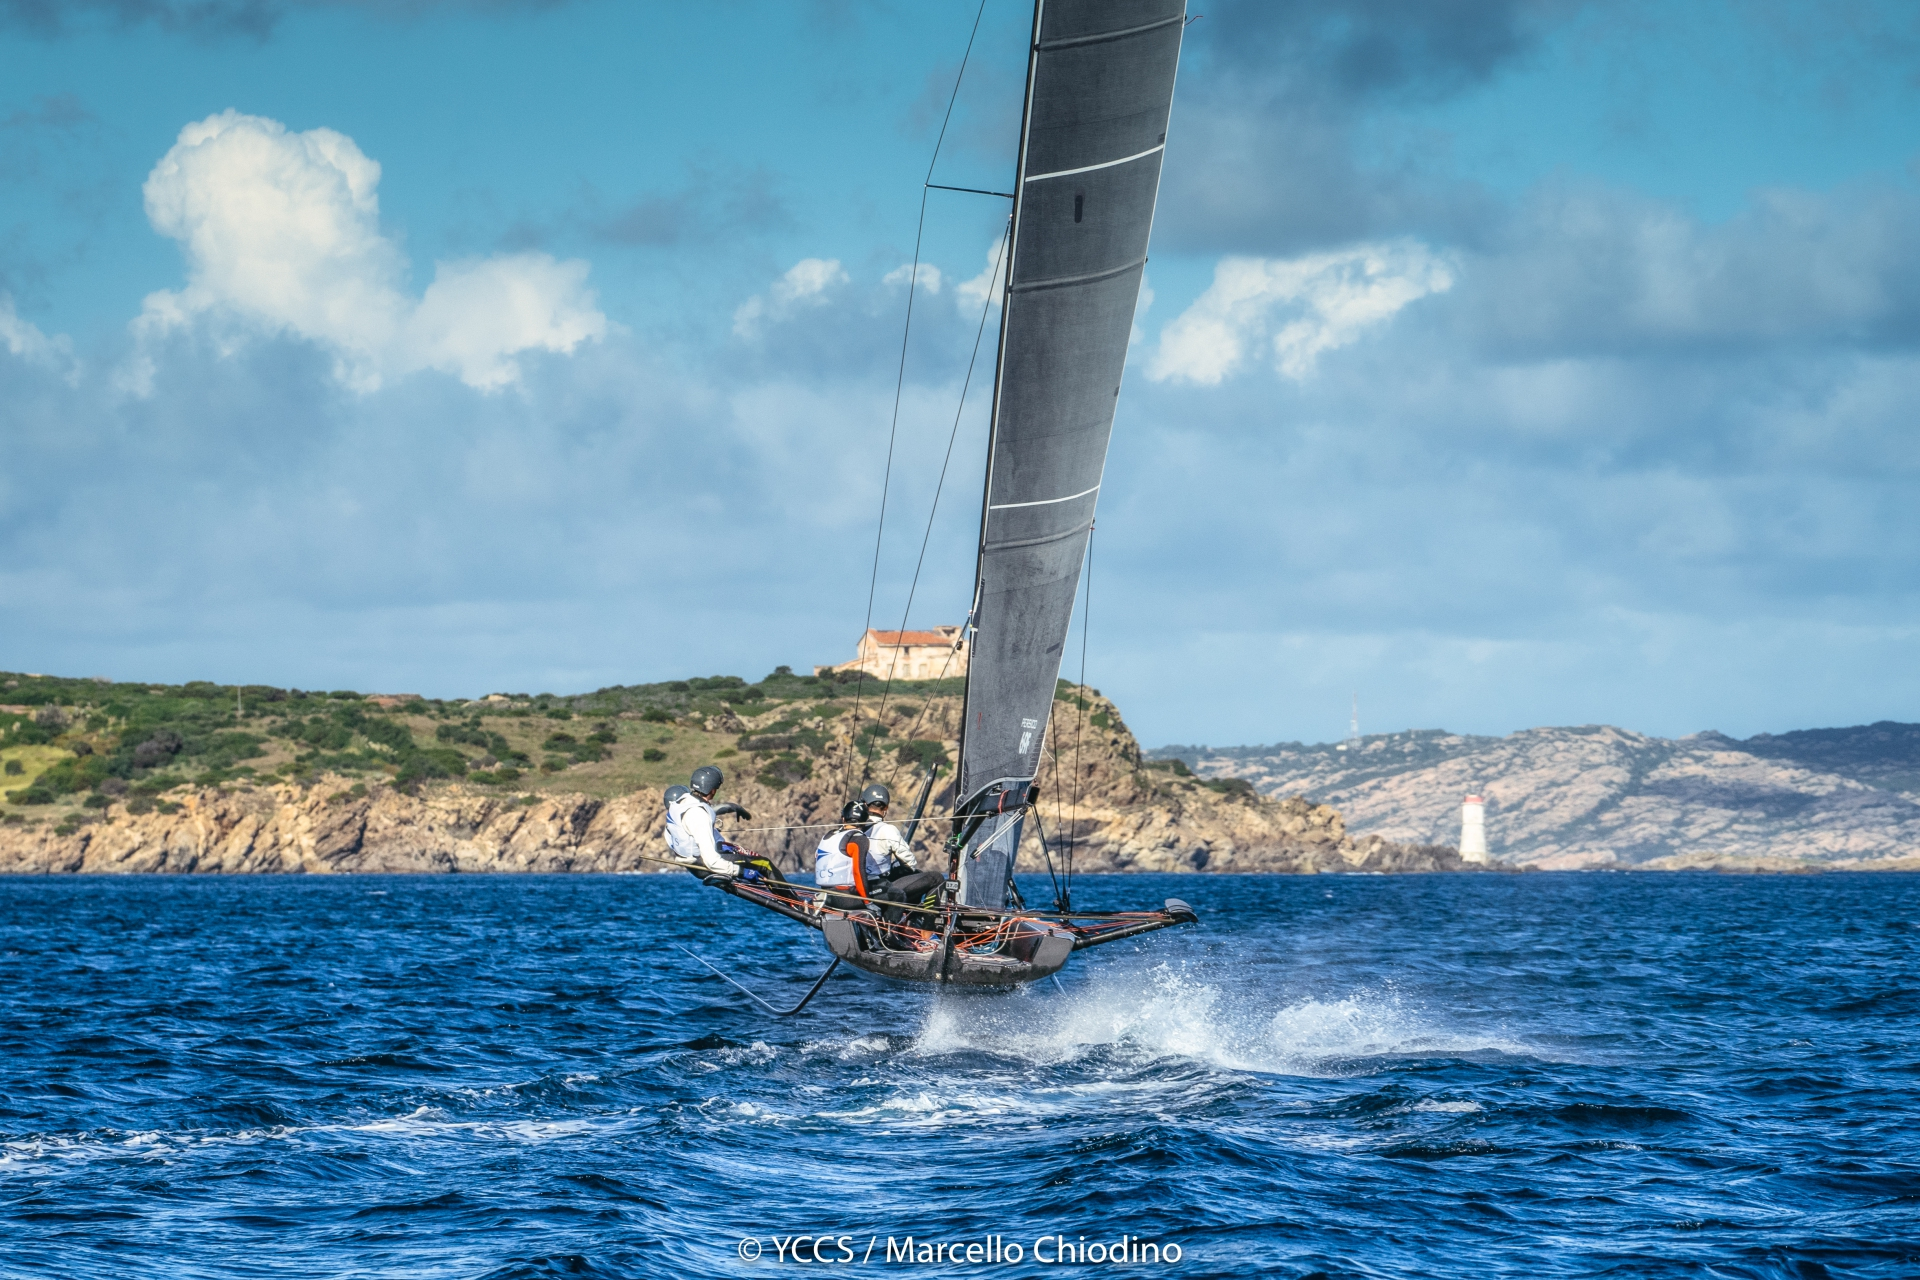 Young Azzurra, Two further team members named following training in Porto Cervo - NEWS - Yacht Club Costa Smeralda